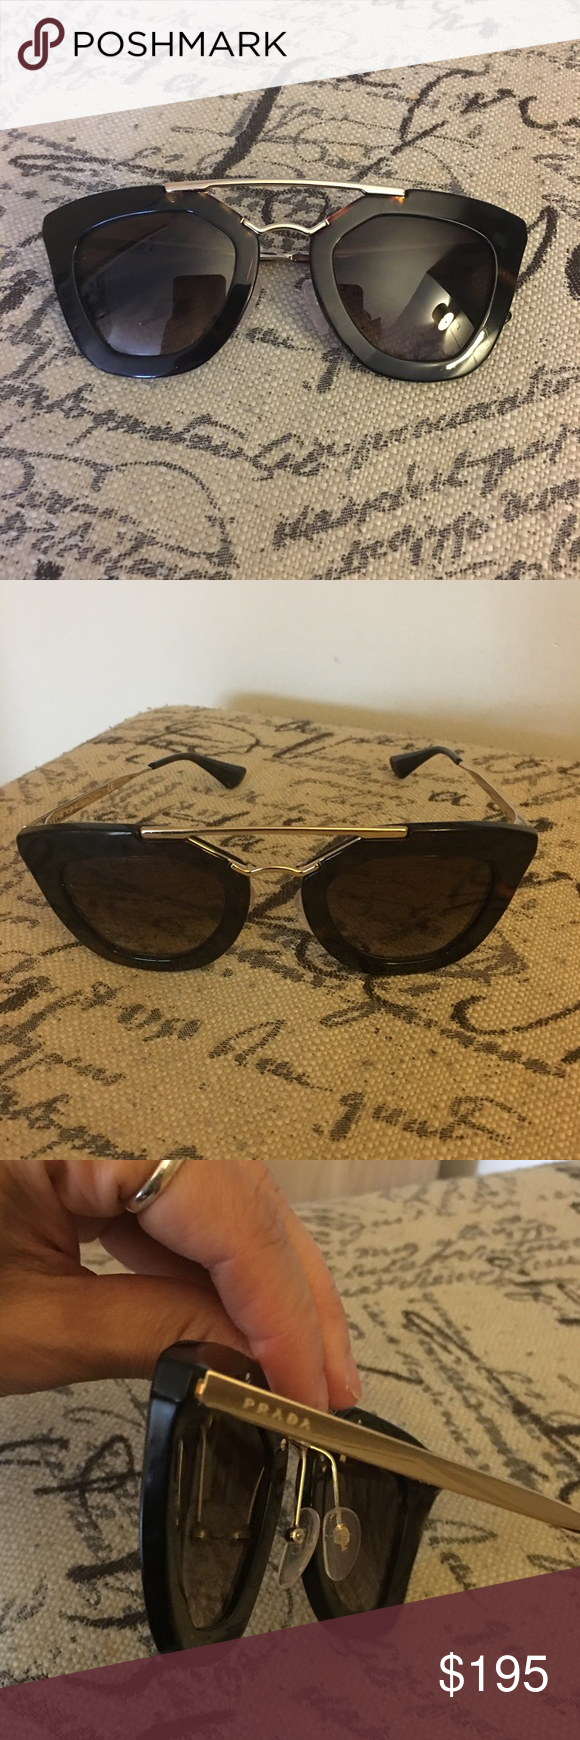 New authentic Prada shades sunglasses nwt New authentic old fashion Jackie o Prada wear. Summer shades sunglasses dark to light brown gold trim around . I had my niece put them on so u can see the length. No case as is no damage no scratches. prada  Accessories Sunglasses